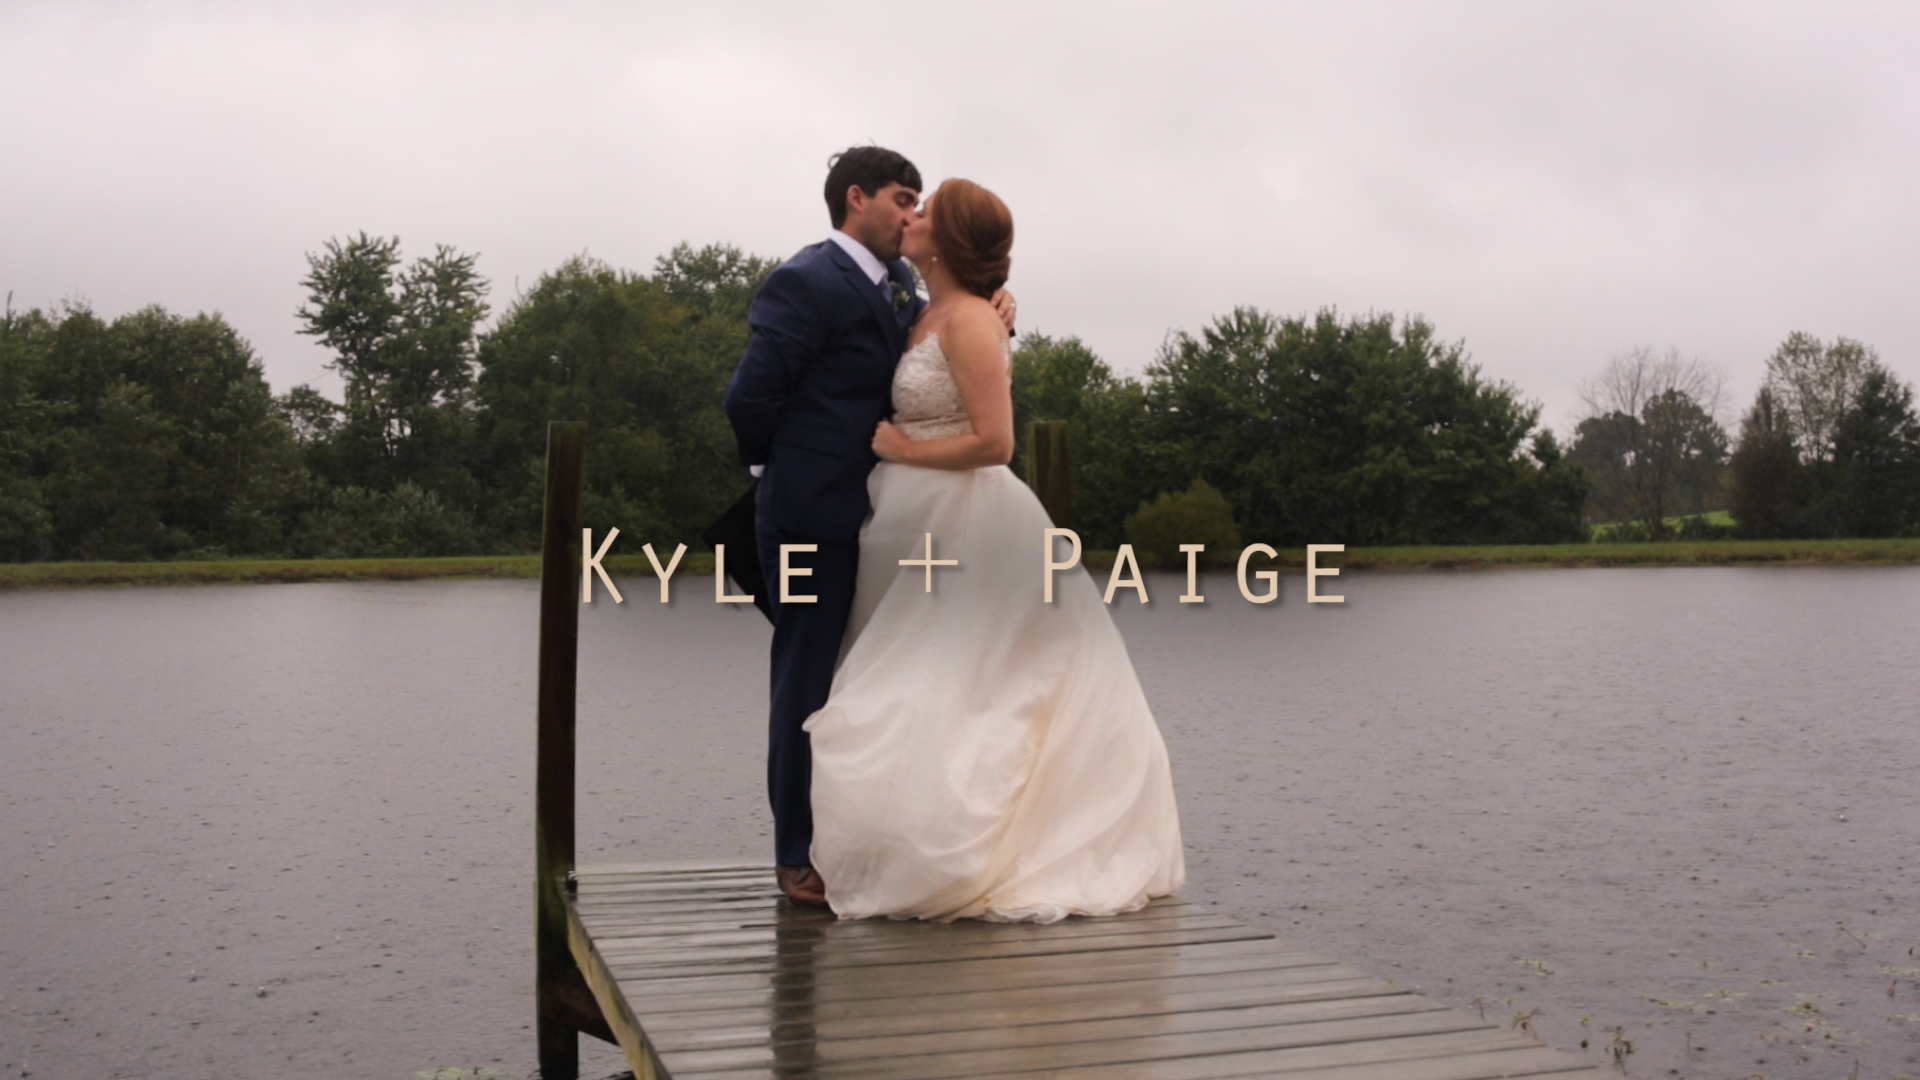 Kyle + Paige | Elizabethtown, Kentucky | The Brides Parents Farm